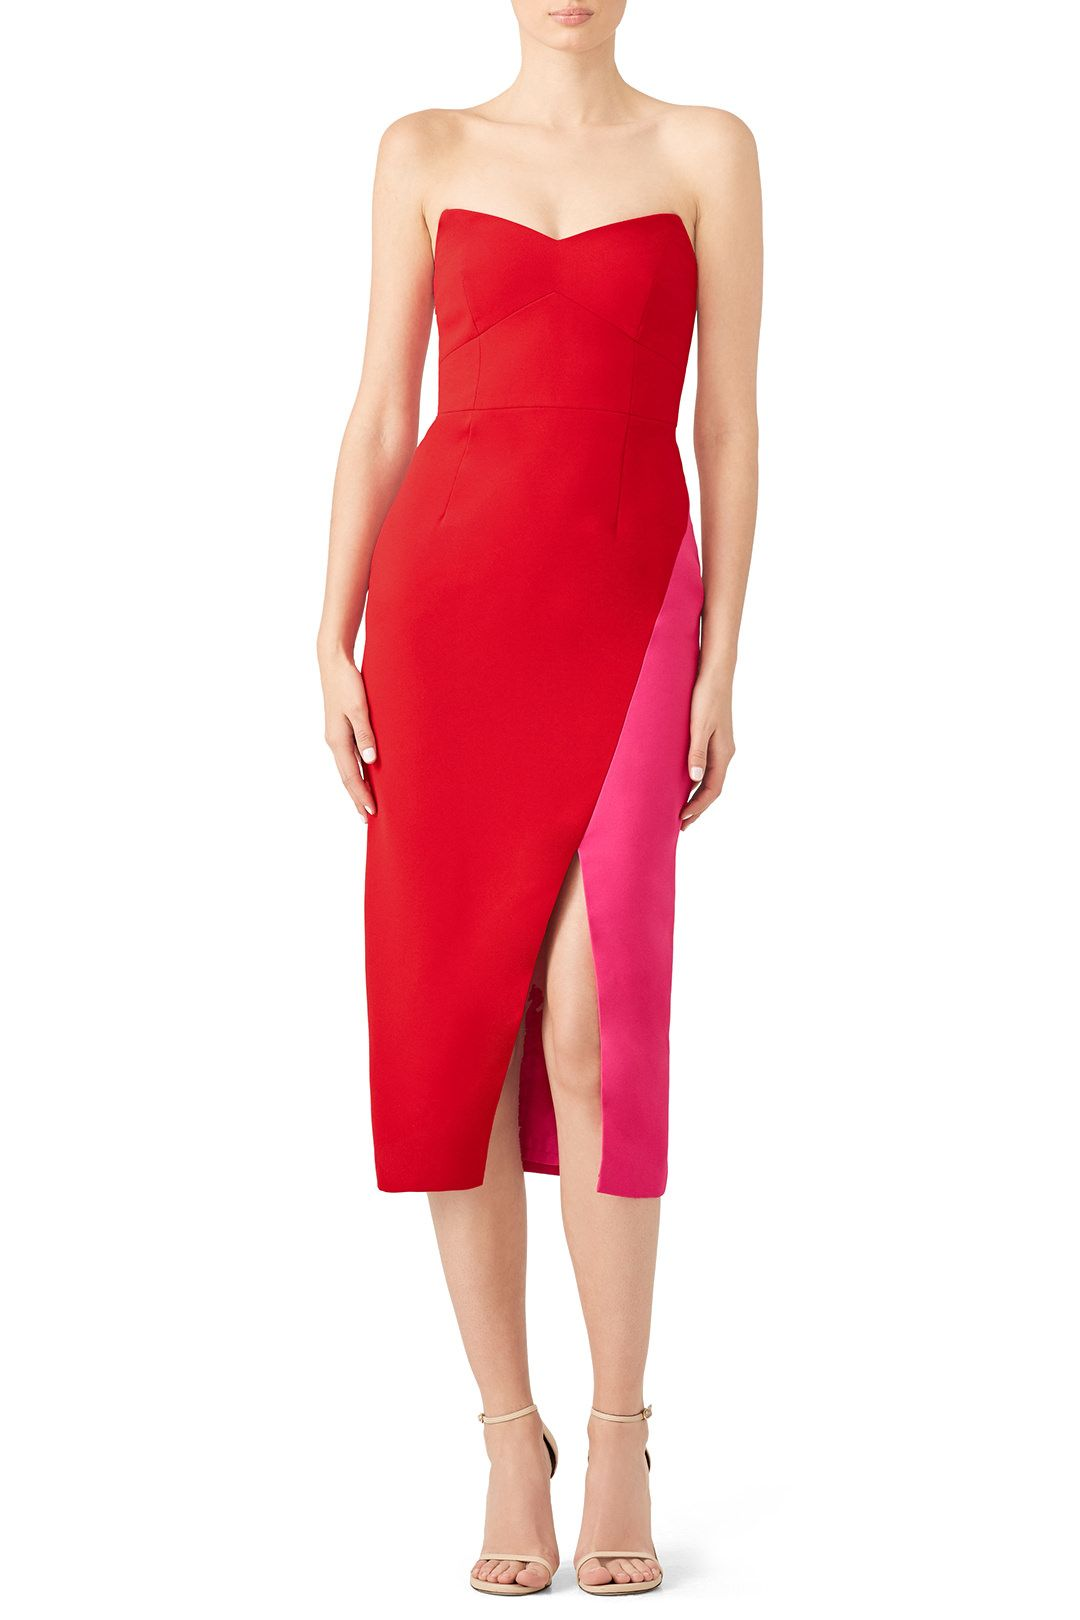 89c10c82 Rent Red Colorblock Sheath by Jill Jill Stuart for $55 - $70 only at Rent  the Runway.